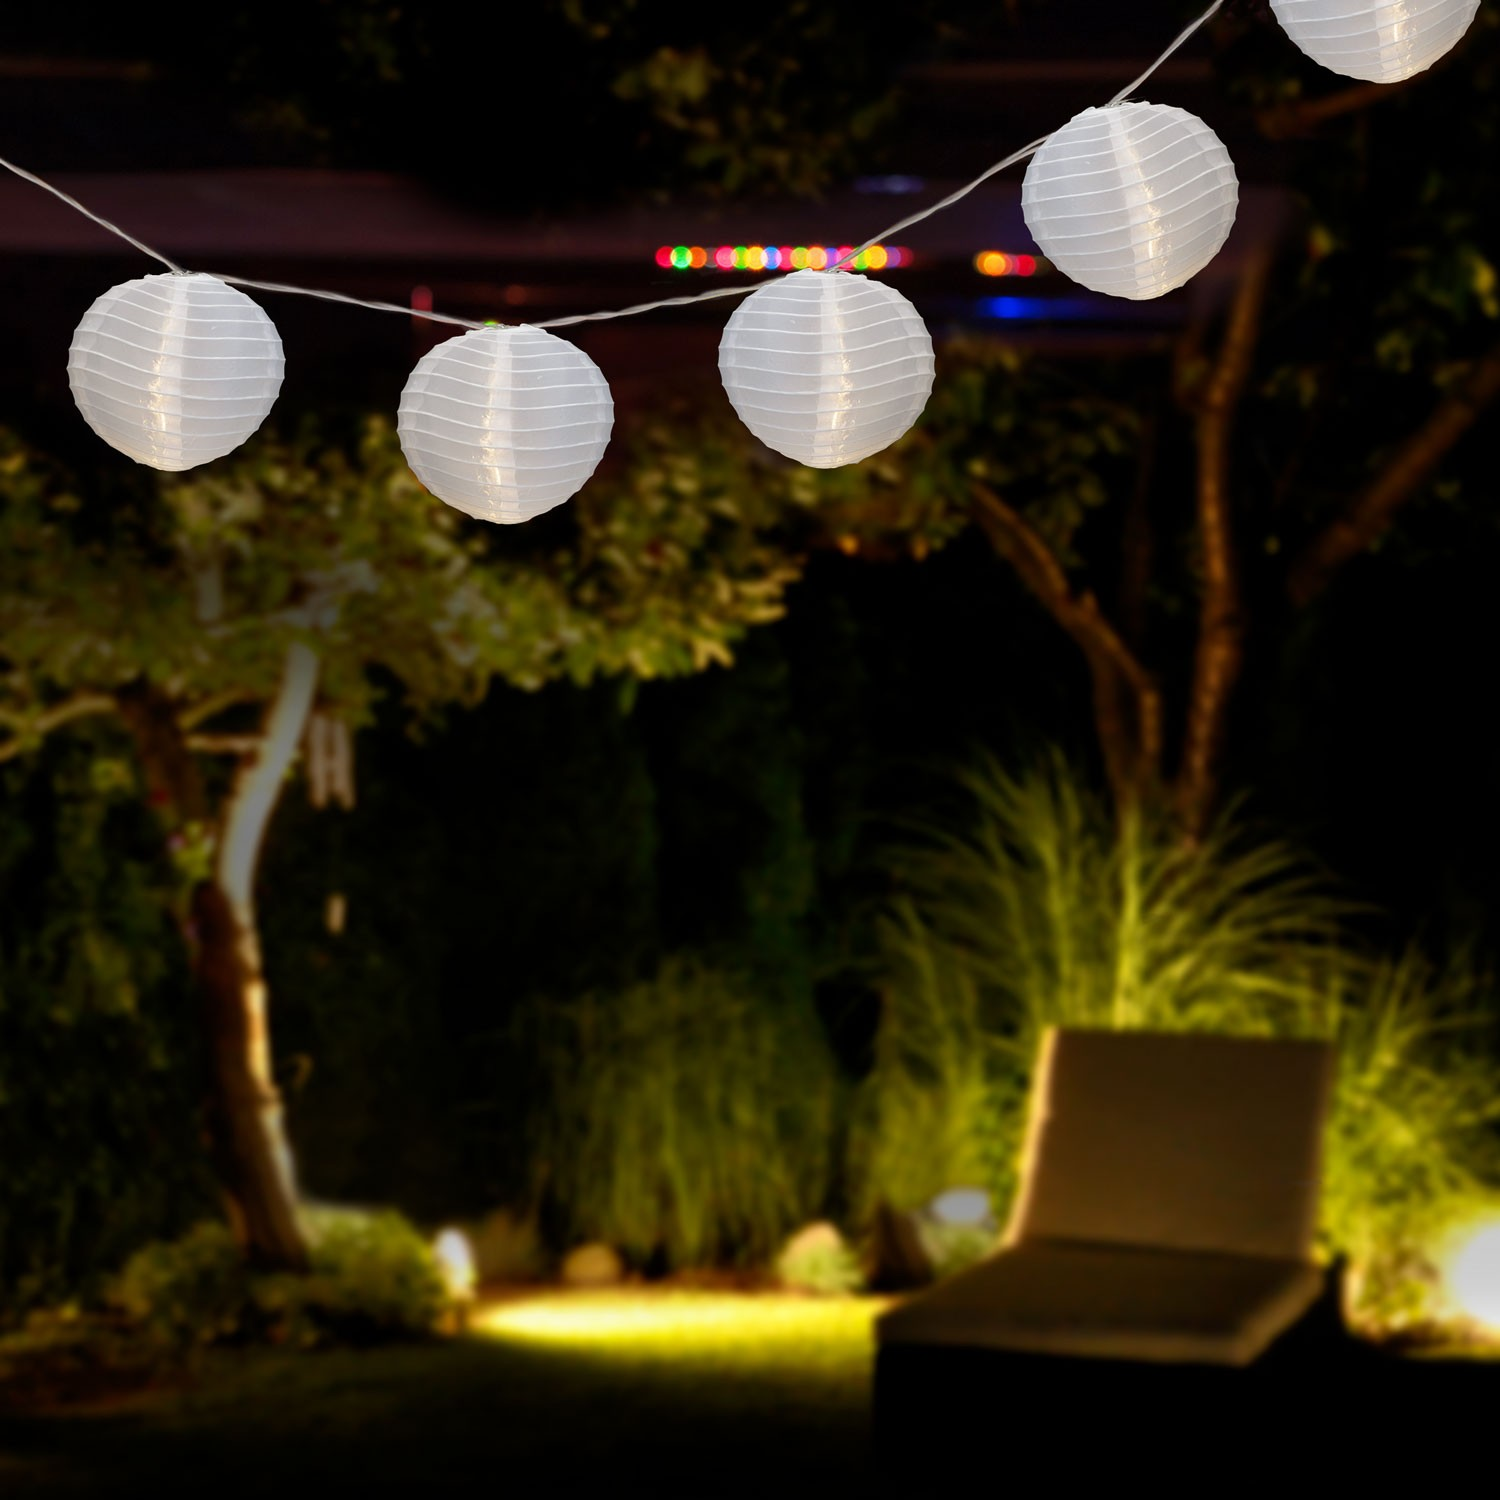 garten partylichter lampion lichterkette wei 15 lampions 30 leds garten dekoration beleuchtung. Black Bedroom Furniture Sets. Home Design Ideas